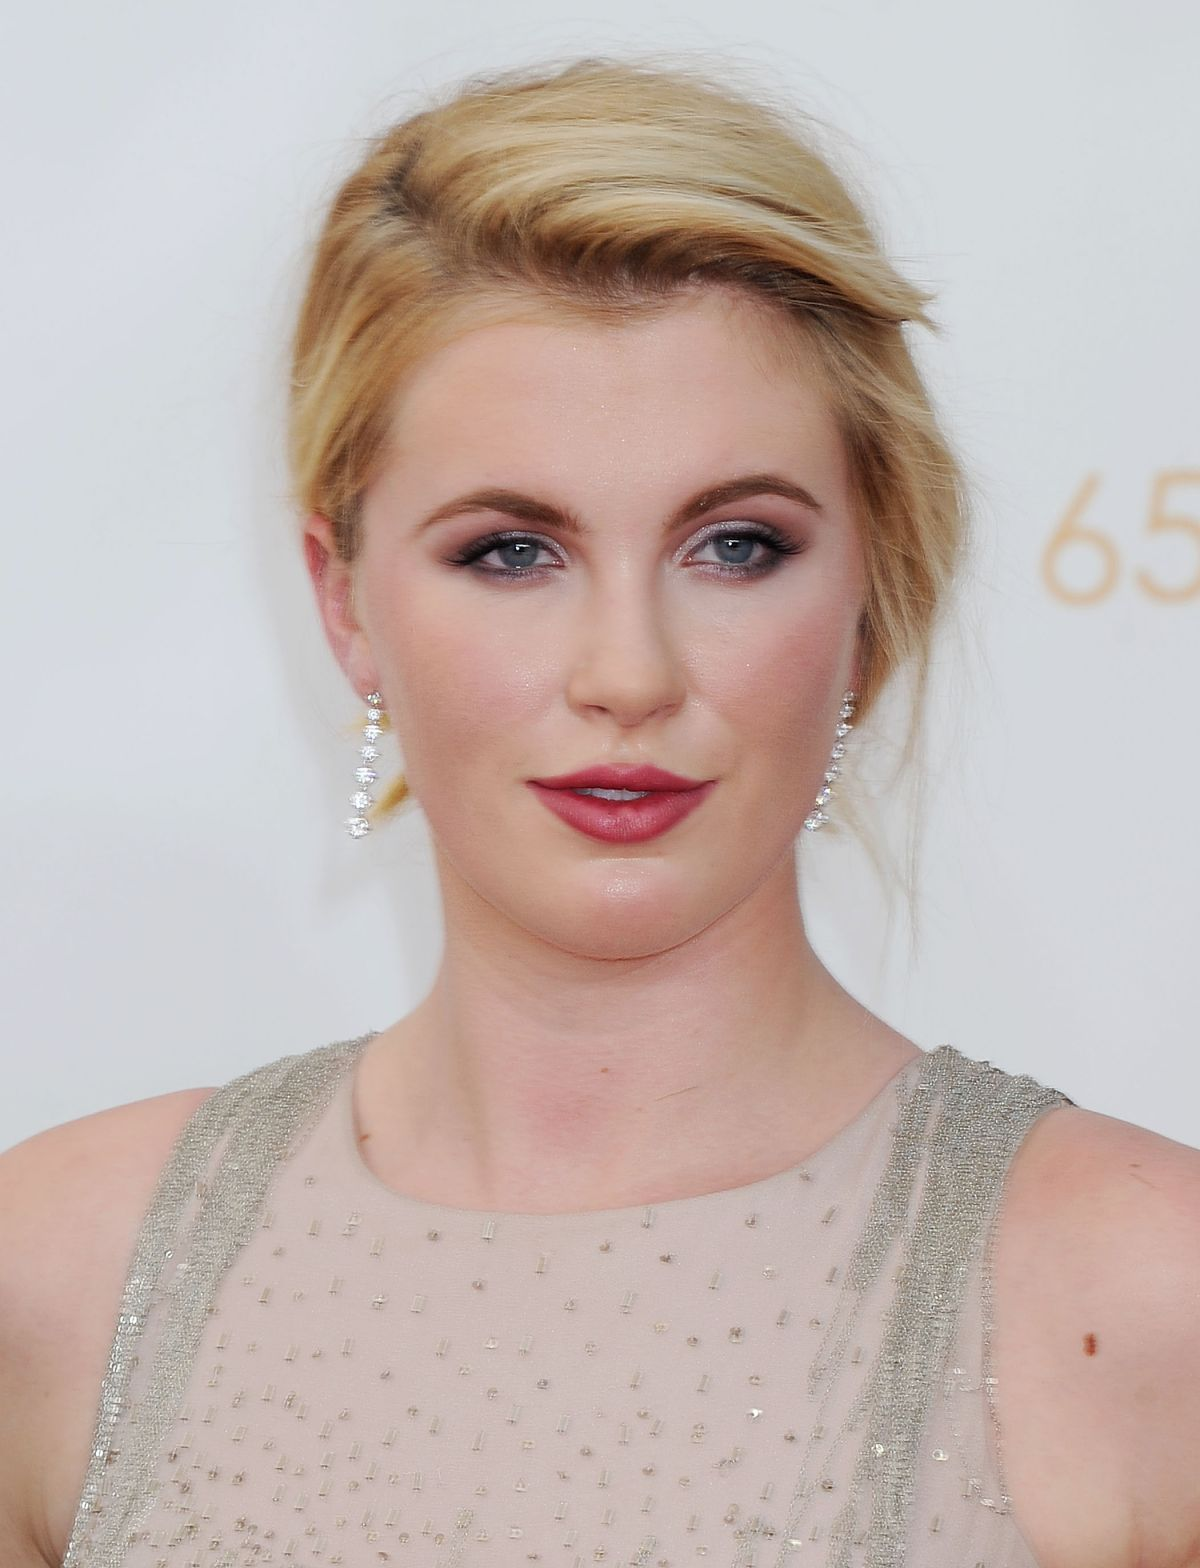 Ireland Baldwin At The 65th Annual Primetime Emmy Awards